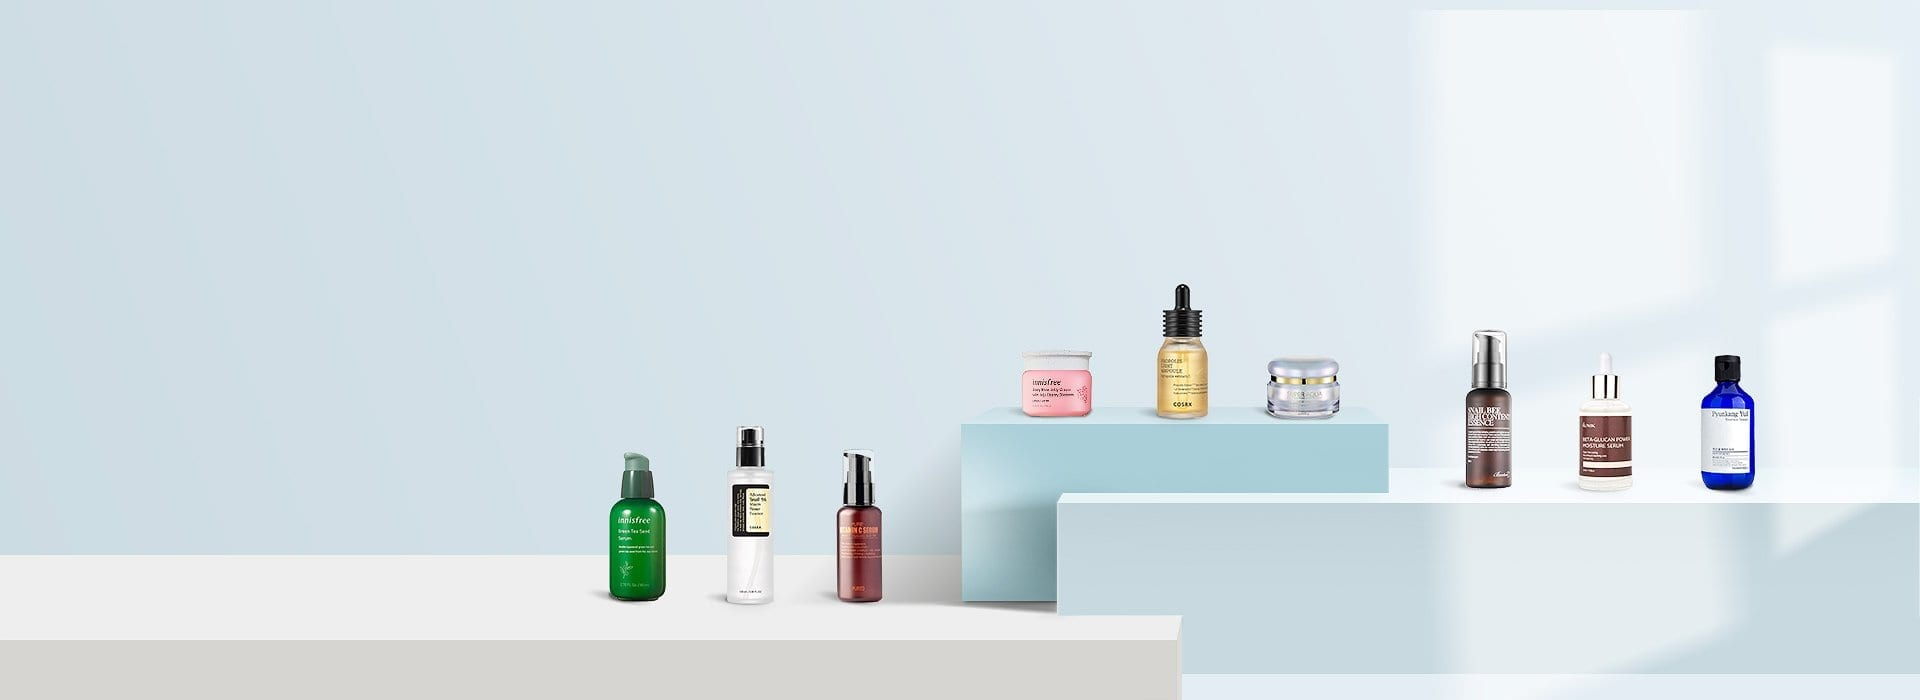 Skincare heroes products at affordable price